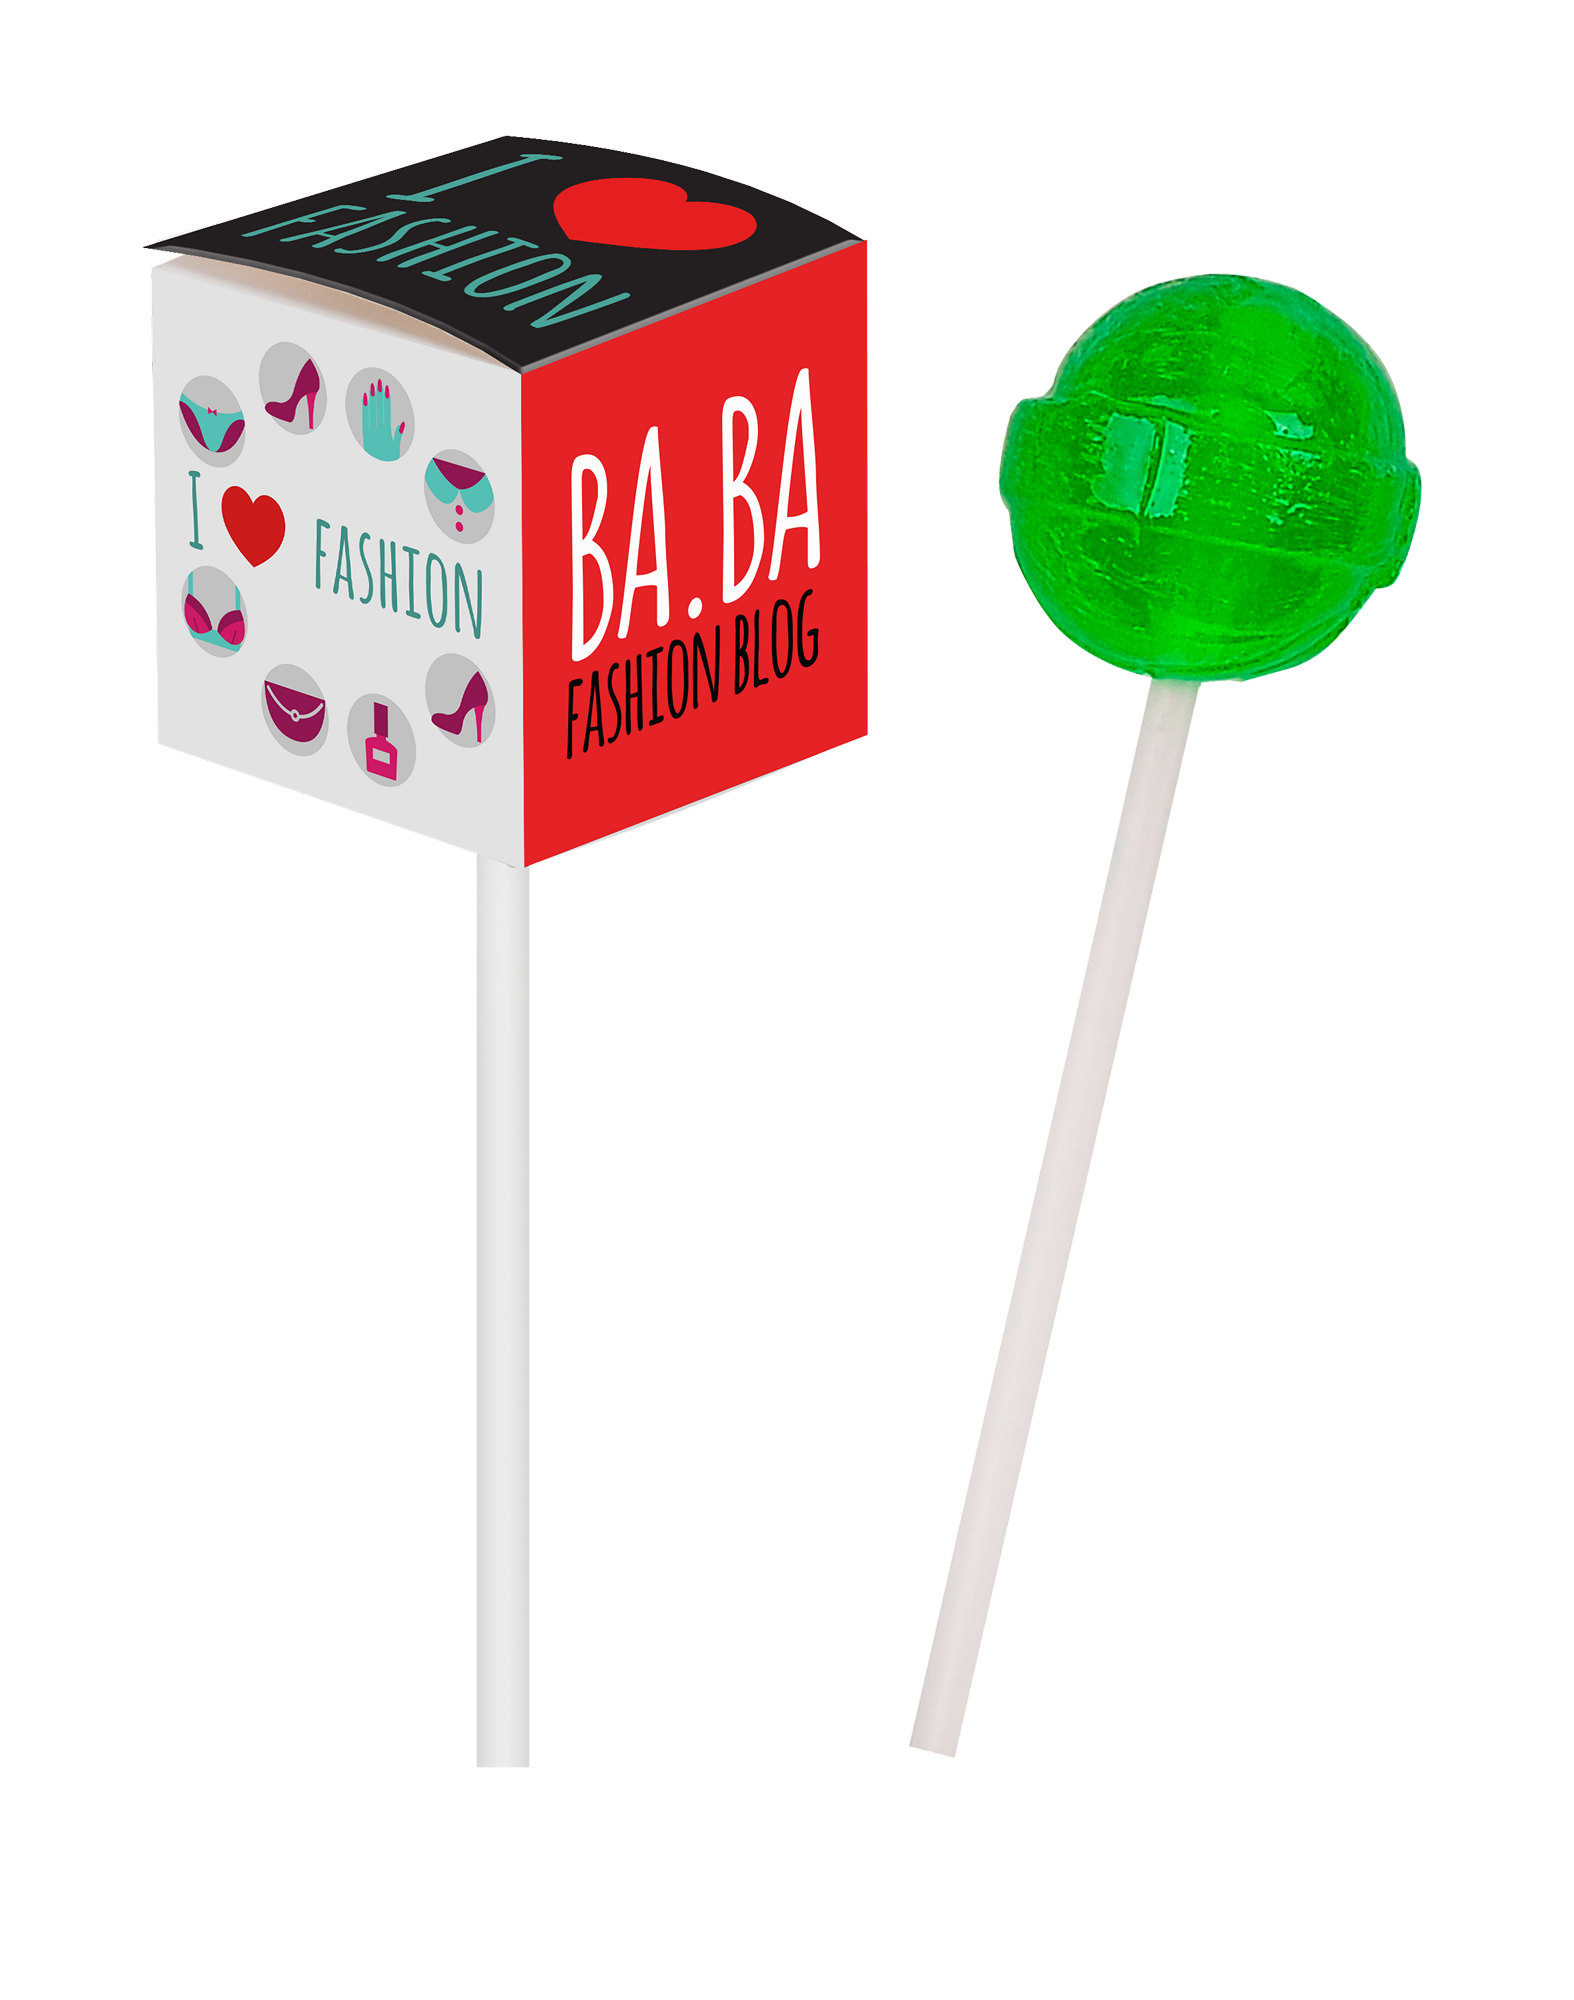 Sucette promotionnelle LOLLY CUBE - article publicitaire